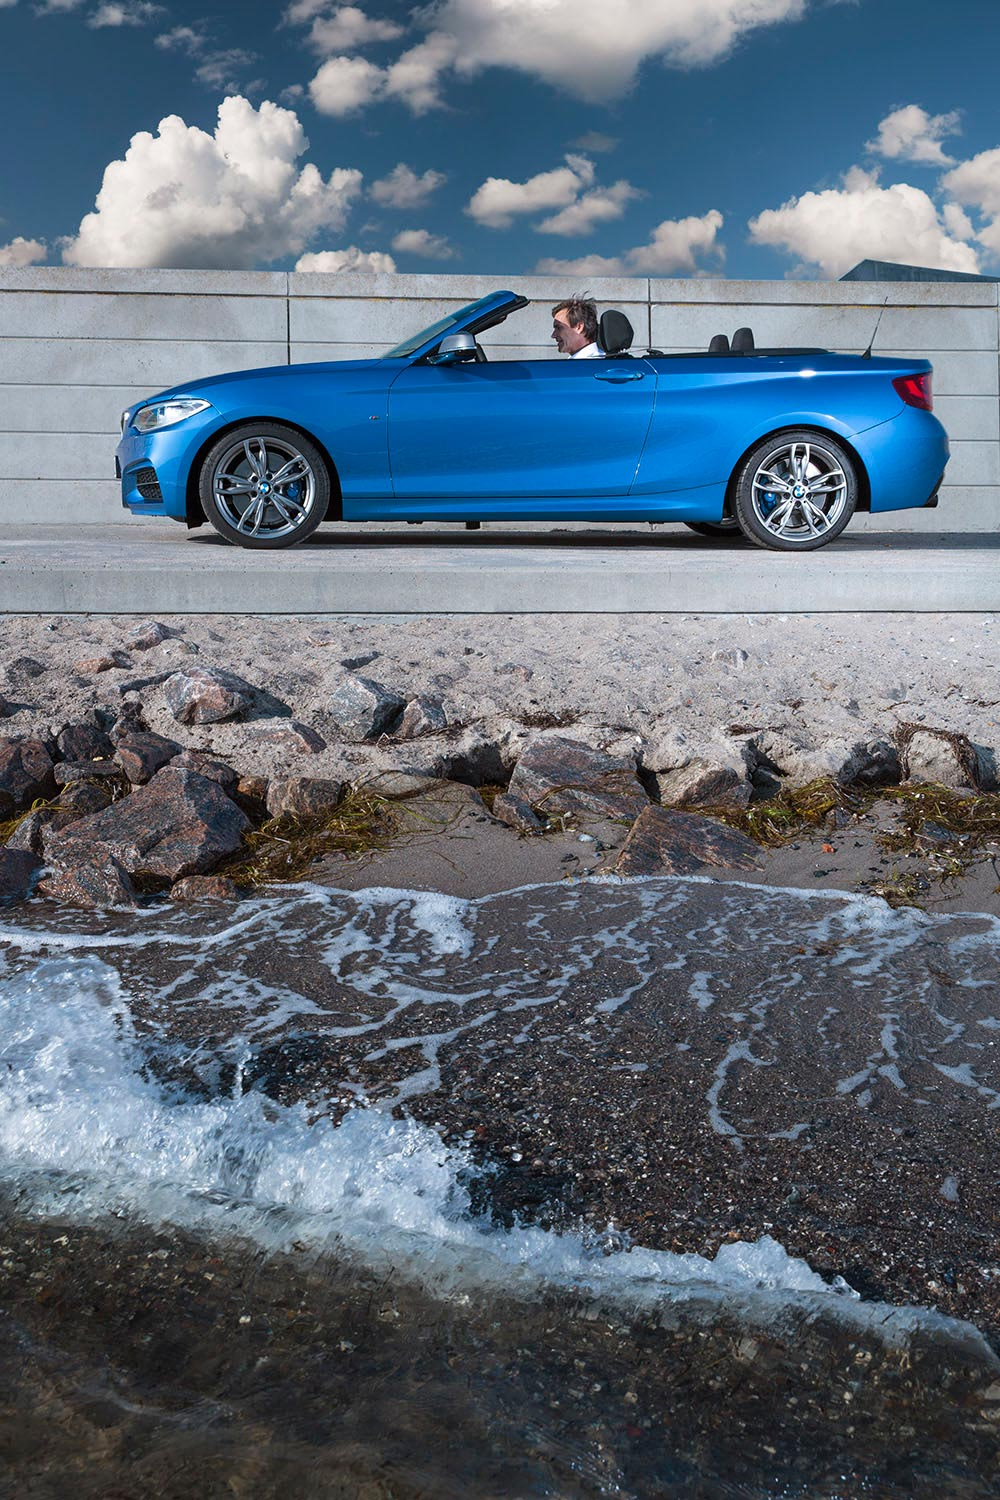 The new BMW 2 Series Convertible M235i 16